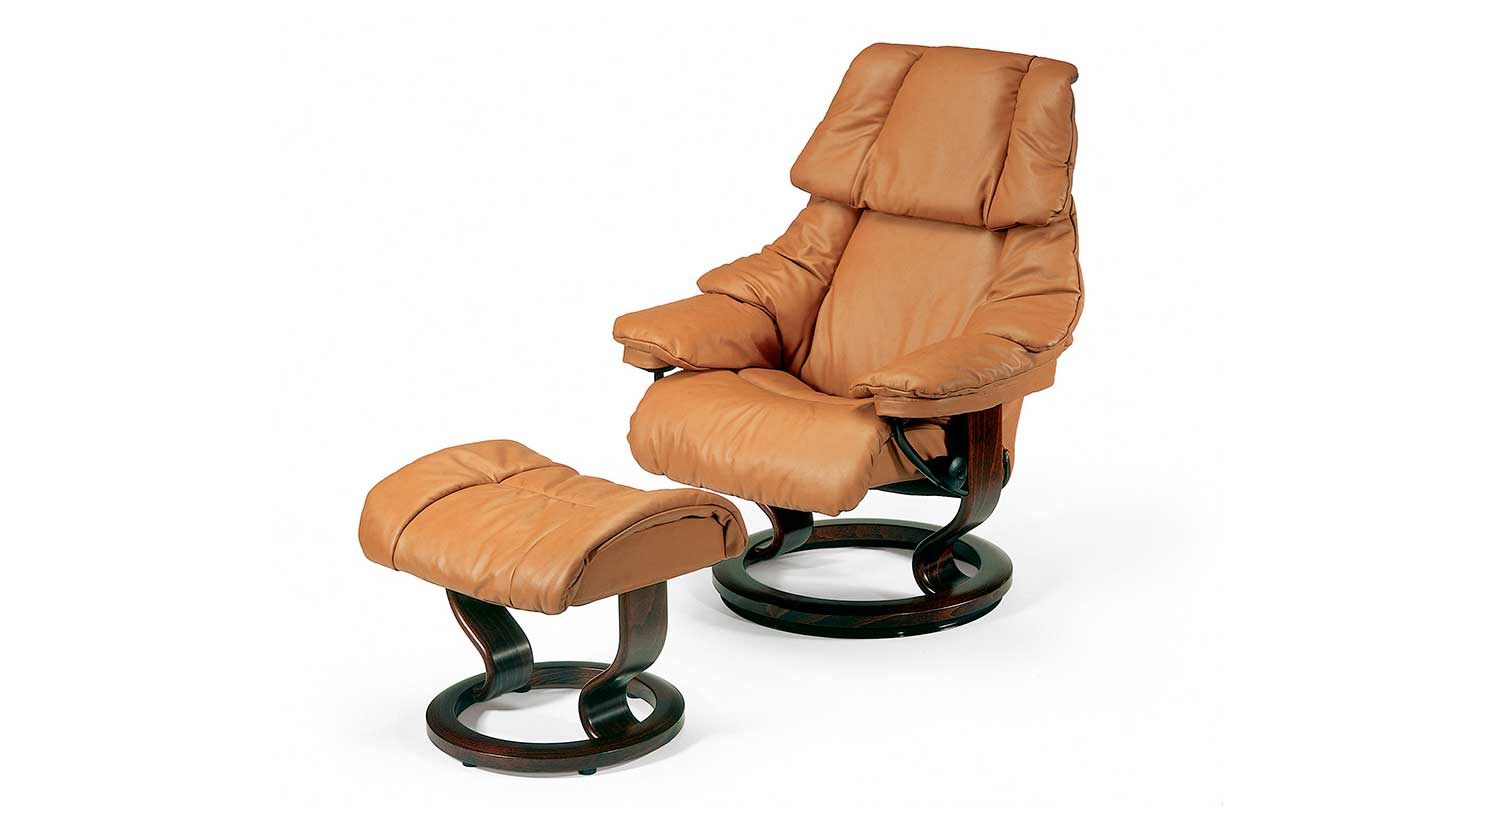 Stressless Sofa And Chairs Circle Furniture Stressless Reno Chair Ekornes Chairs